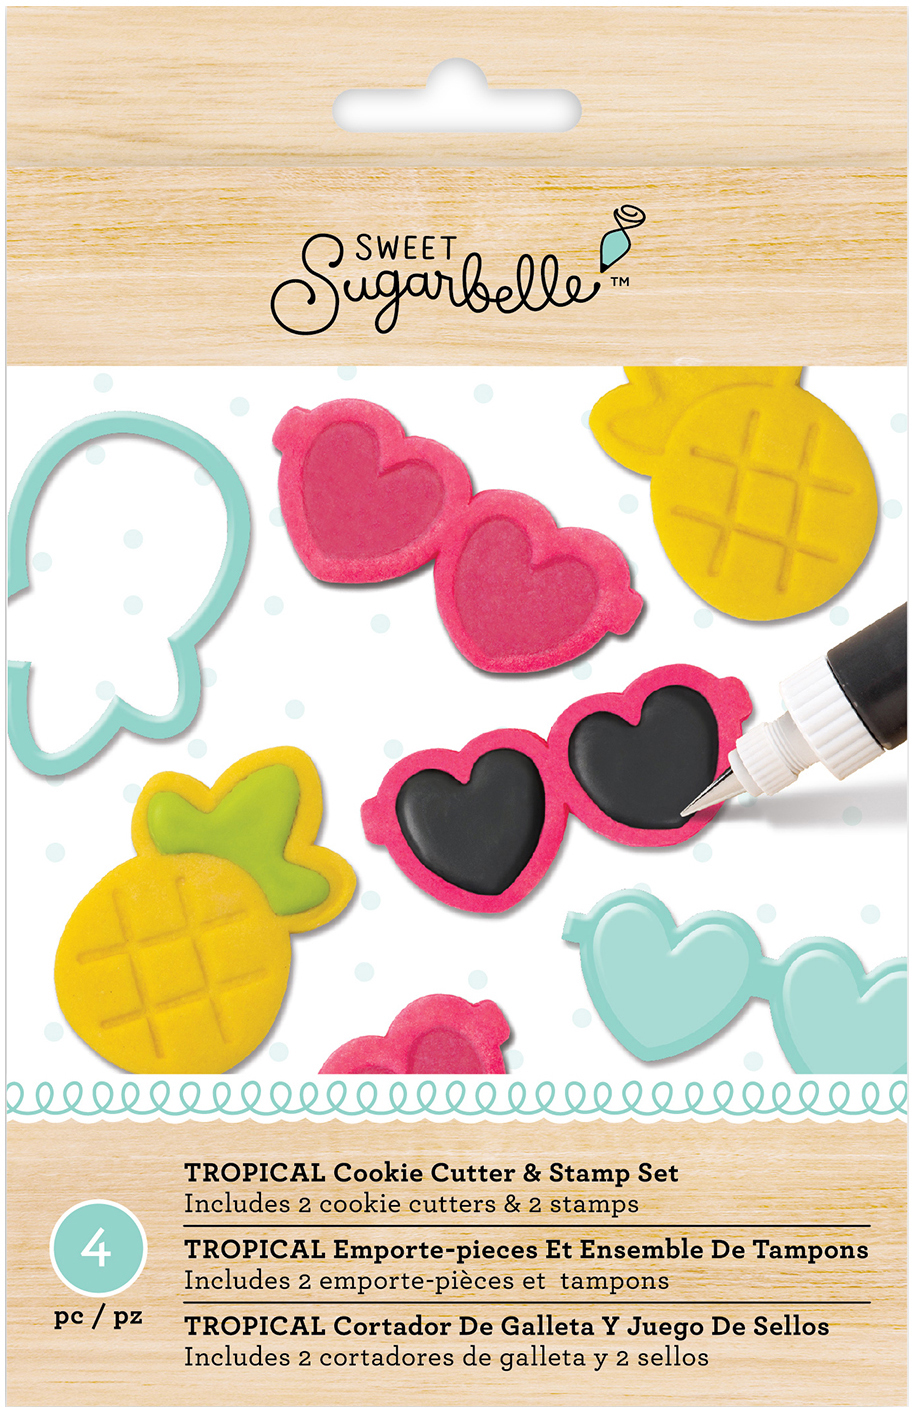 American Crafts Sweet Sugarbelle Specialty Cookie Cutter Set 4 Pkg-Tropical by American Crafts